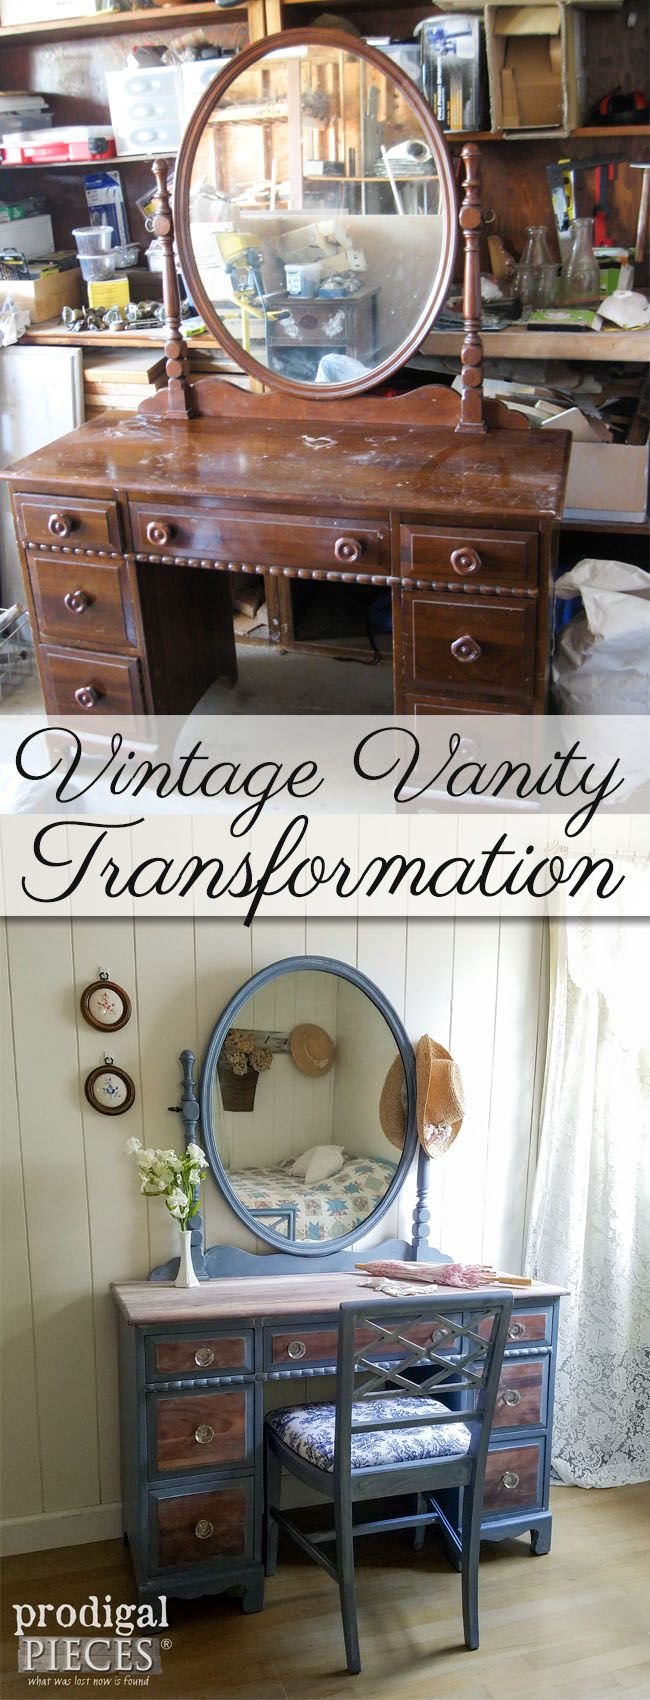 Vintage Kroehler Vanity Gets French Country Cottage Makeover by Prodigal Pieces | www.prodigalpieces.com